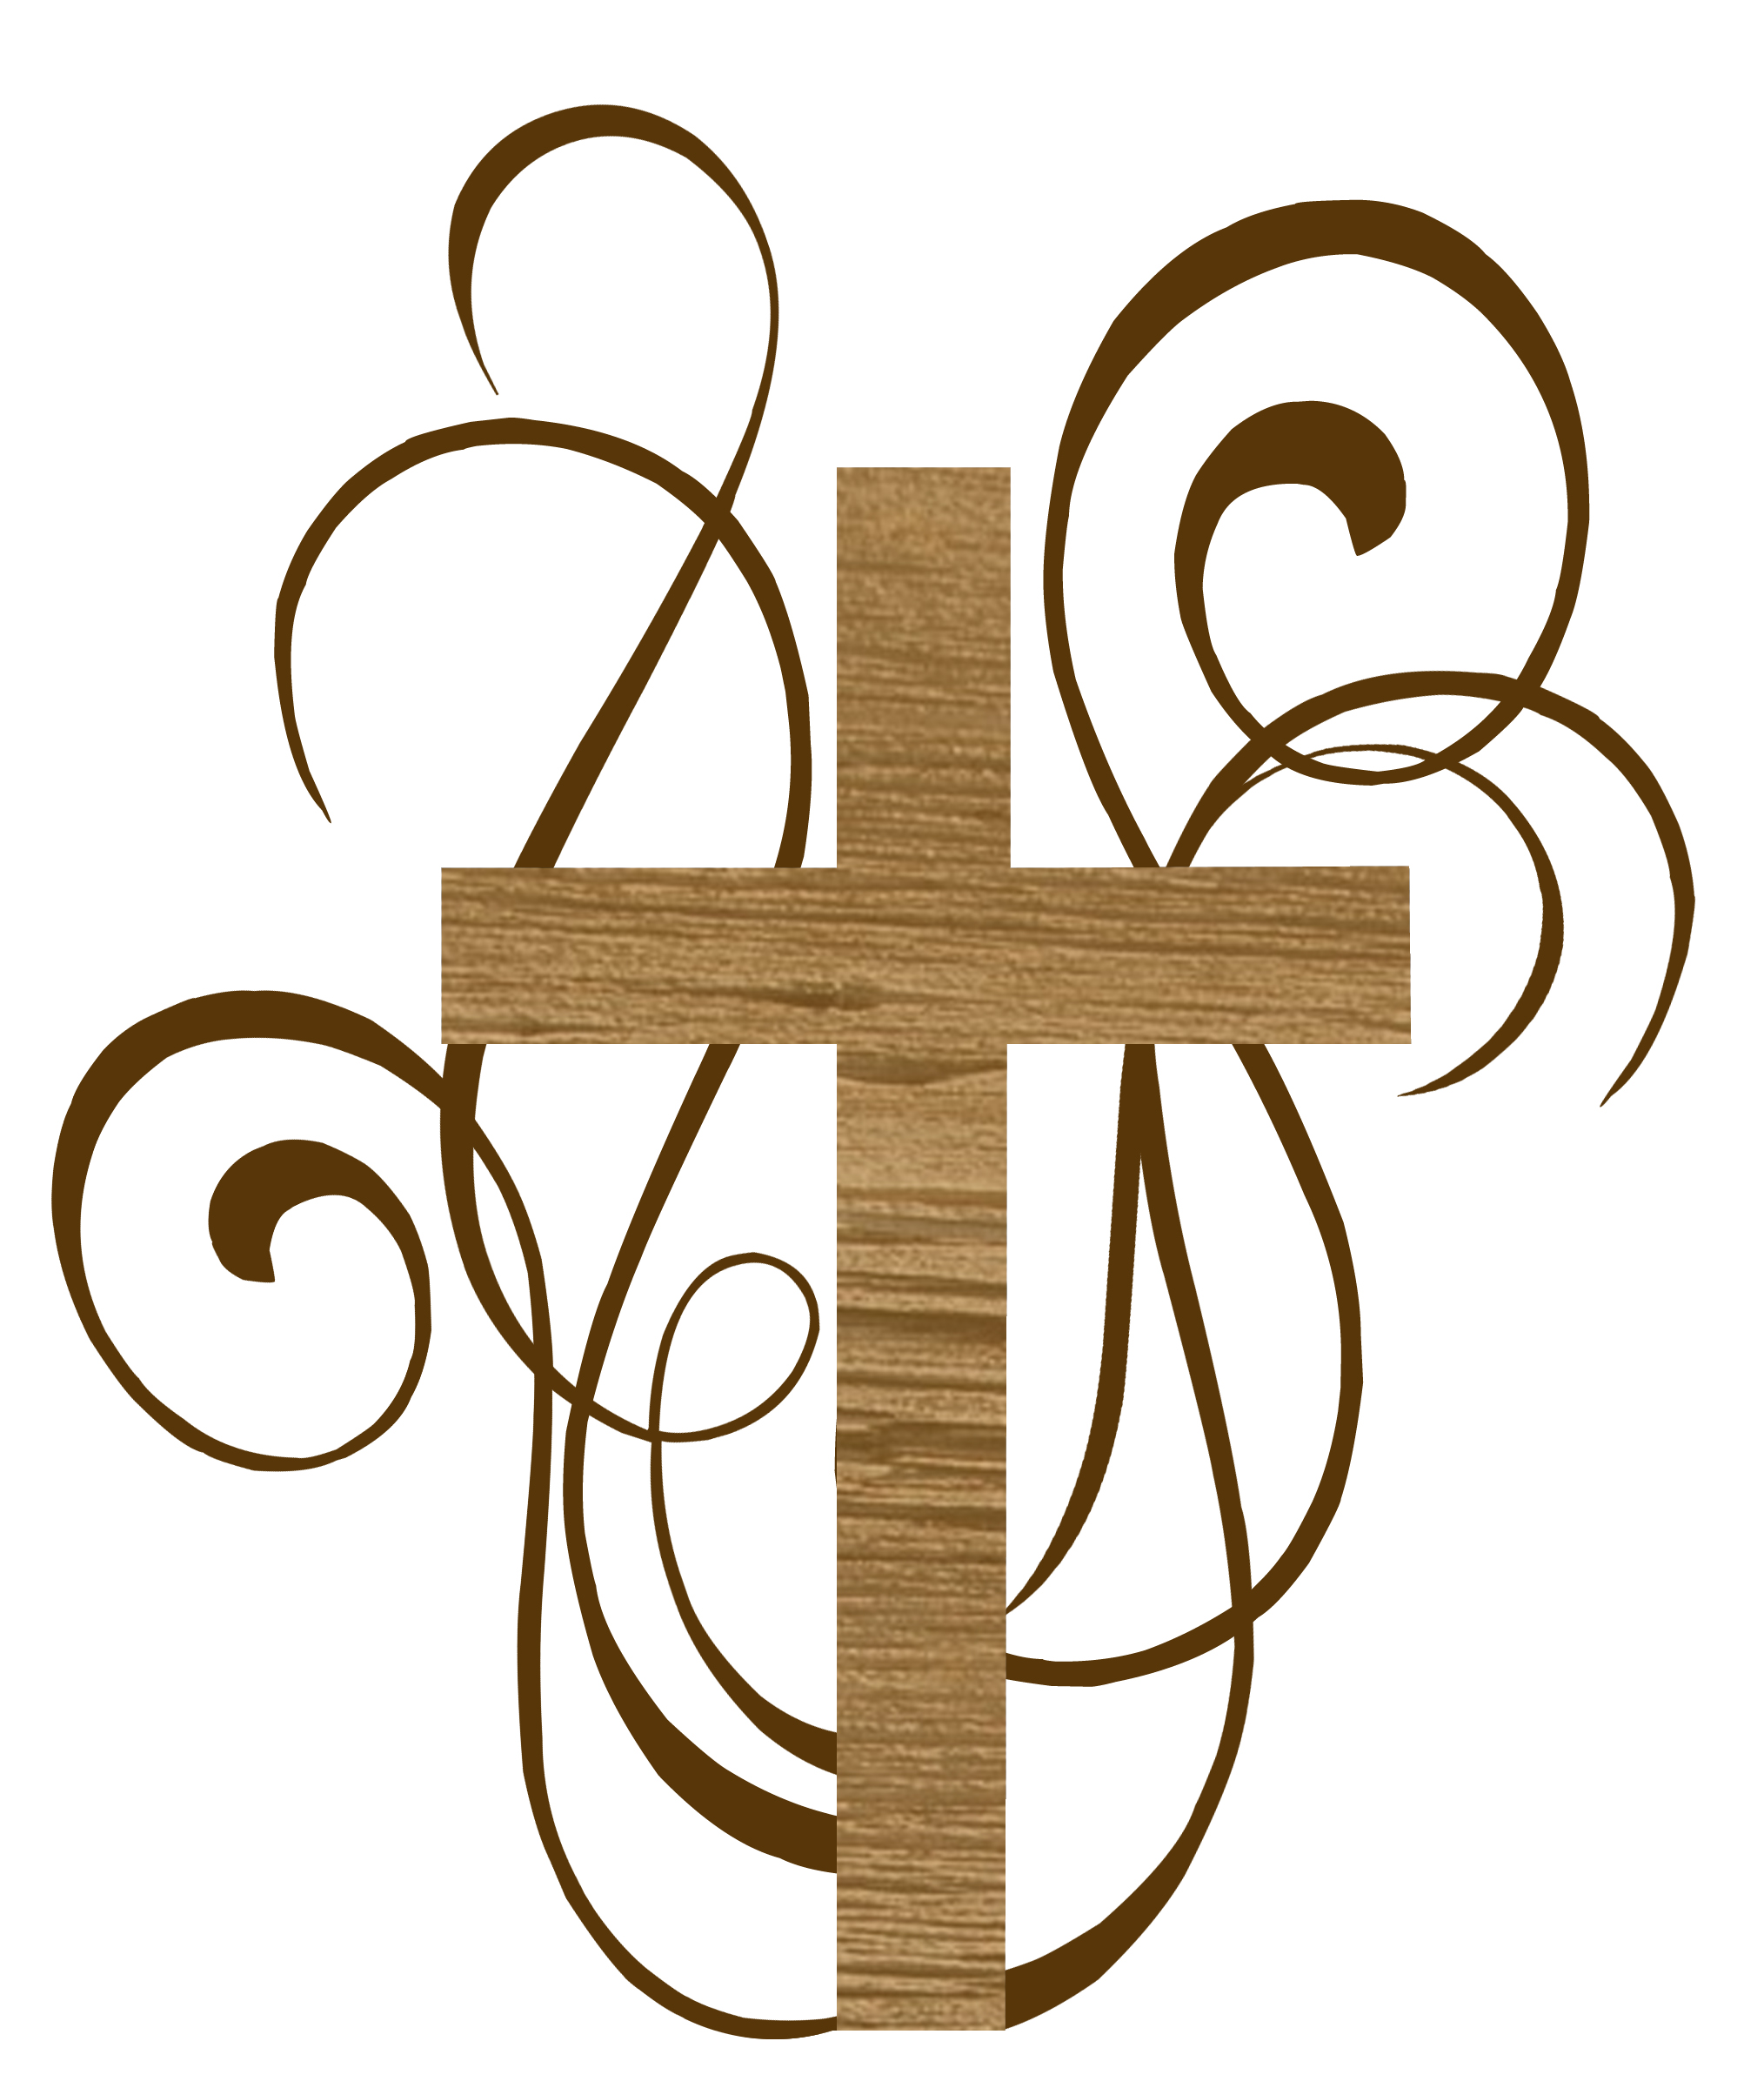 Catholc sympathy clipart graphic transparent Free Baptism Cross Cliparts, Download Free Clip Art, Free Clip Art ... graphic transparent